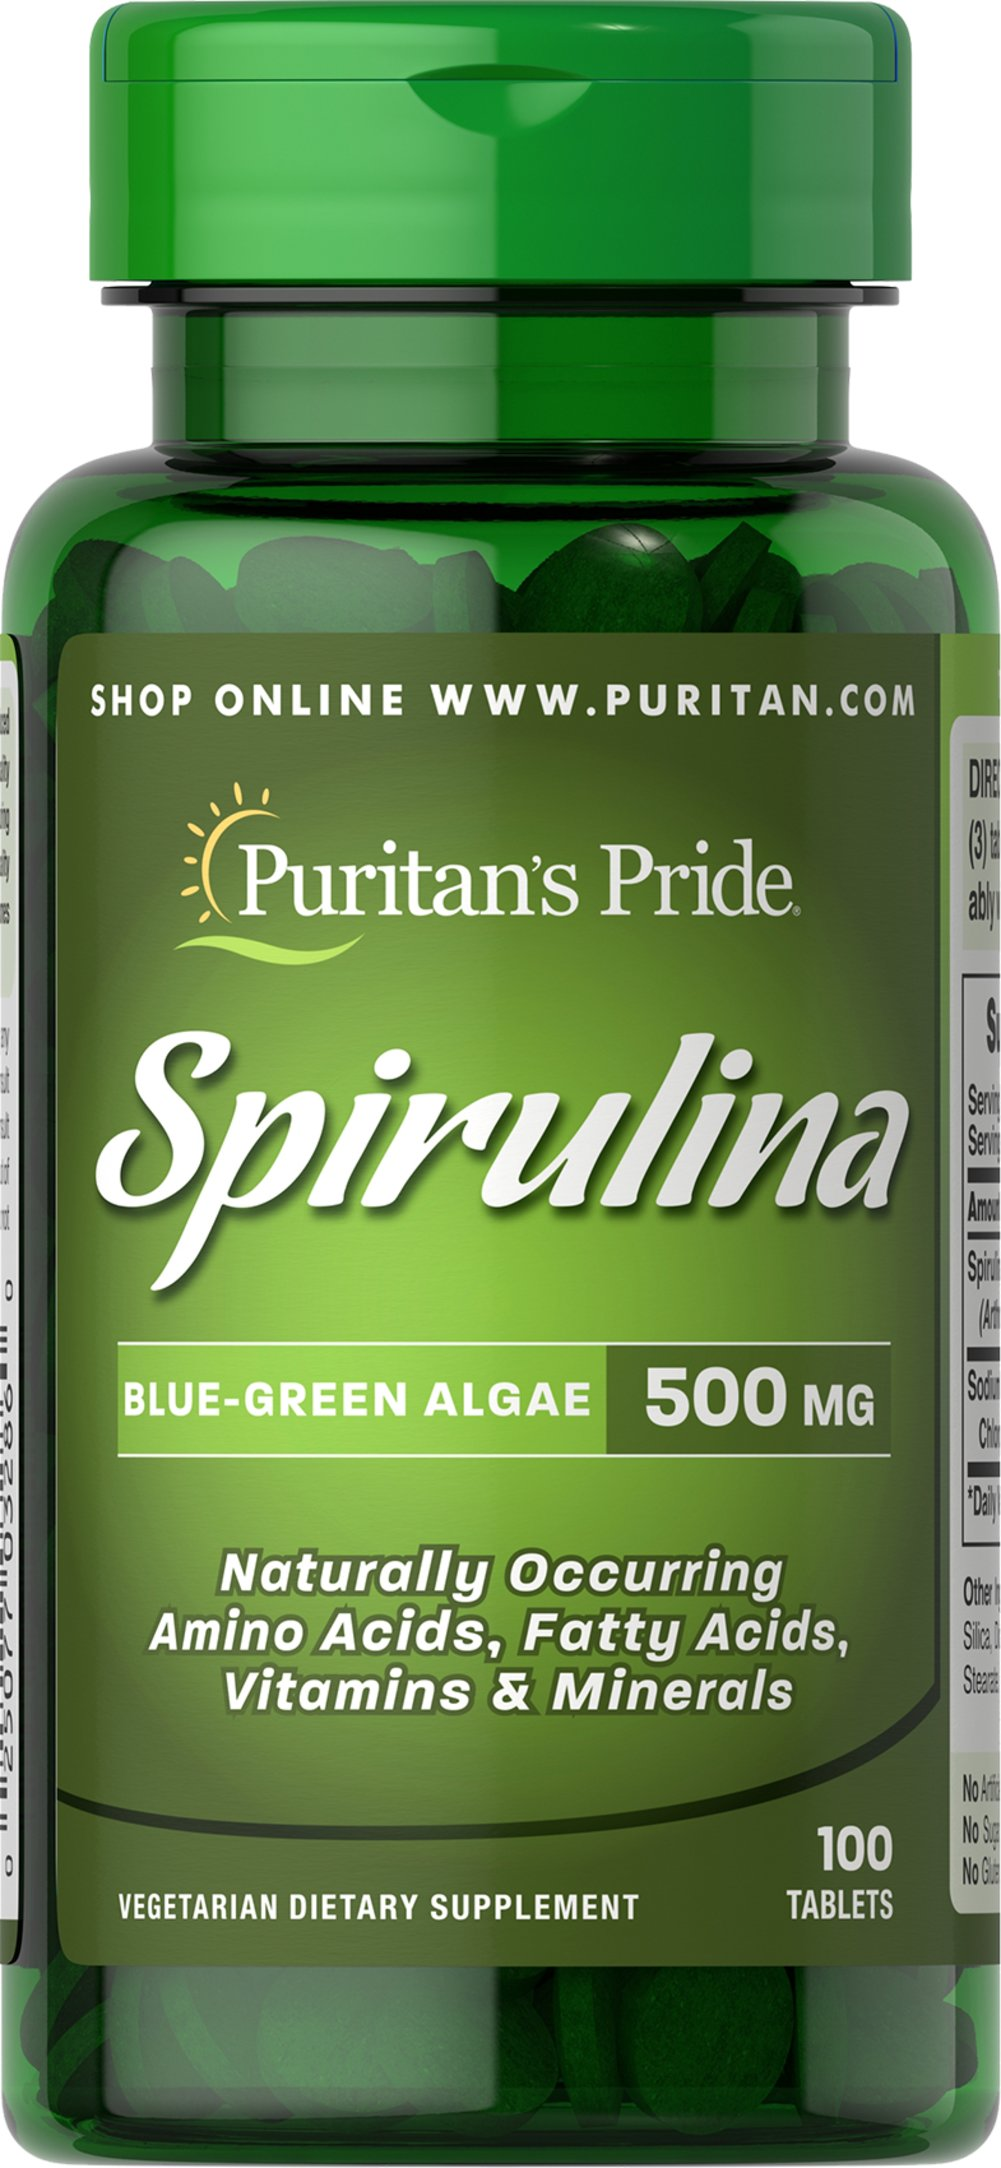 Spirulina 500 mg <p>Spirulina is a blue/green algae that can be found in the world's oceans and lakes.**</p><p> Our Spirulina's high quality 65% protein is thoroughly assimilated without the worry of cholesterol and fat that other protein sources may provide. Available in powder and tablets.</p> 100 Tablets 500 mg $14.39